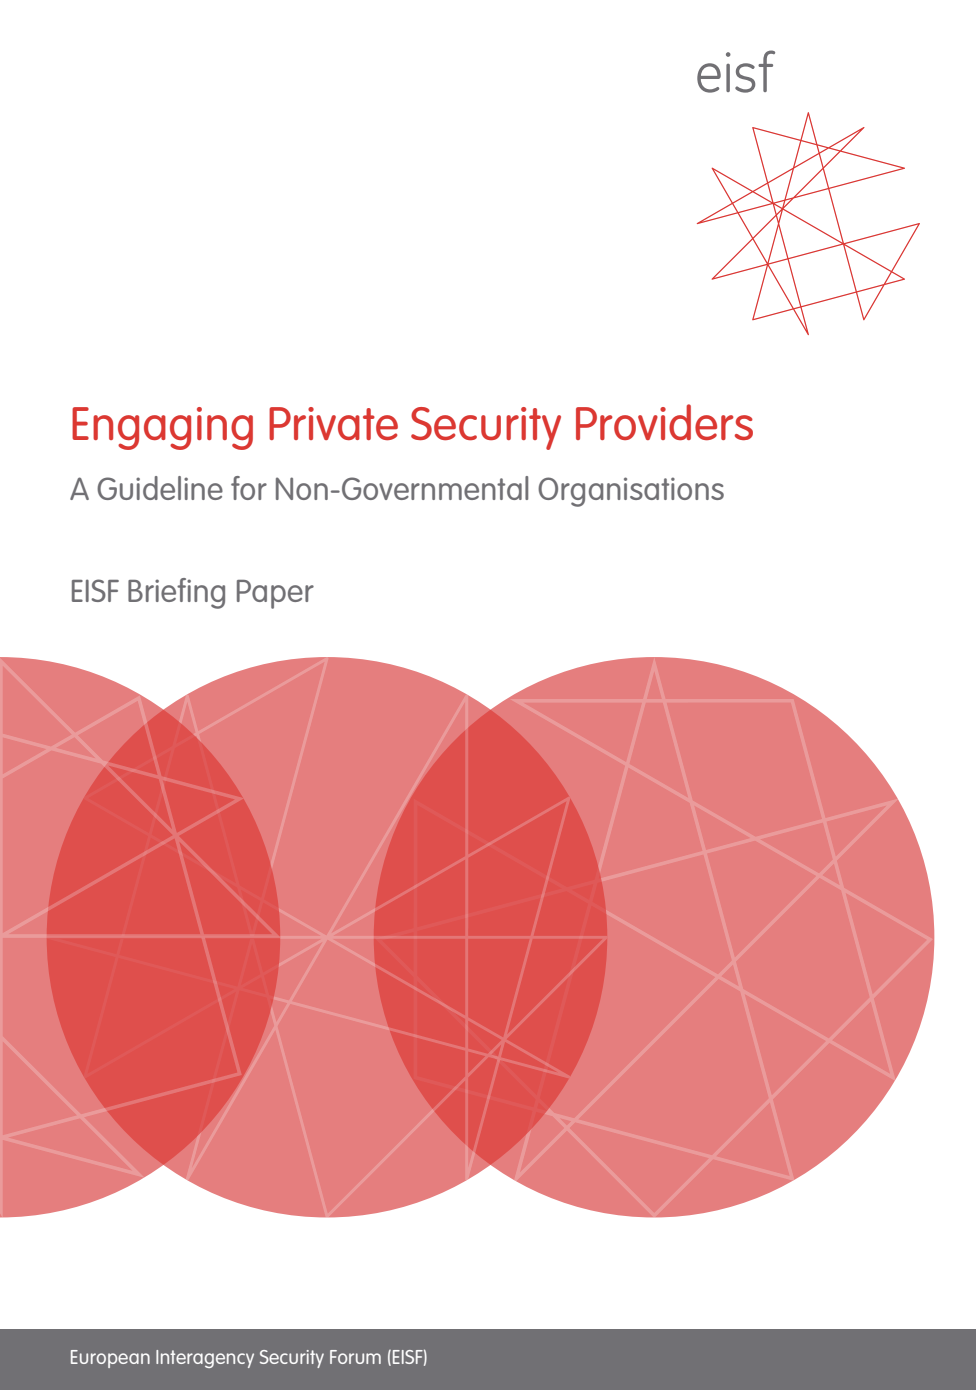 Engaging Private Security Providers: A Guideline for Non-Governmental Organisations